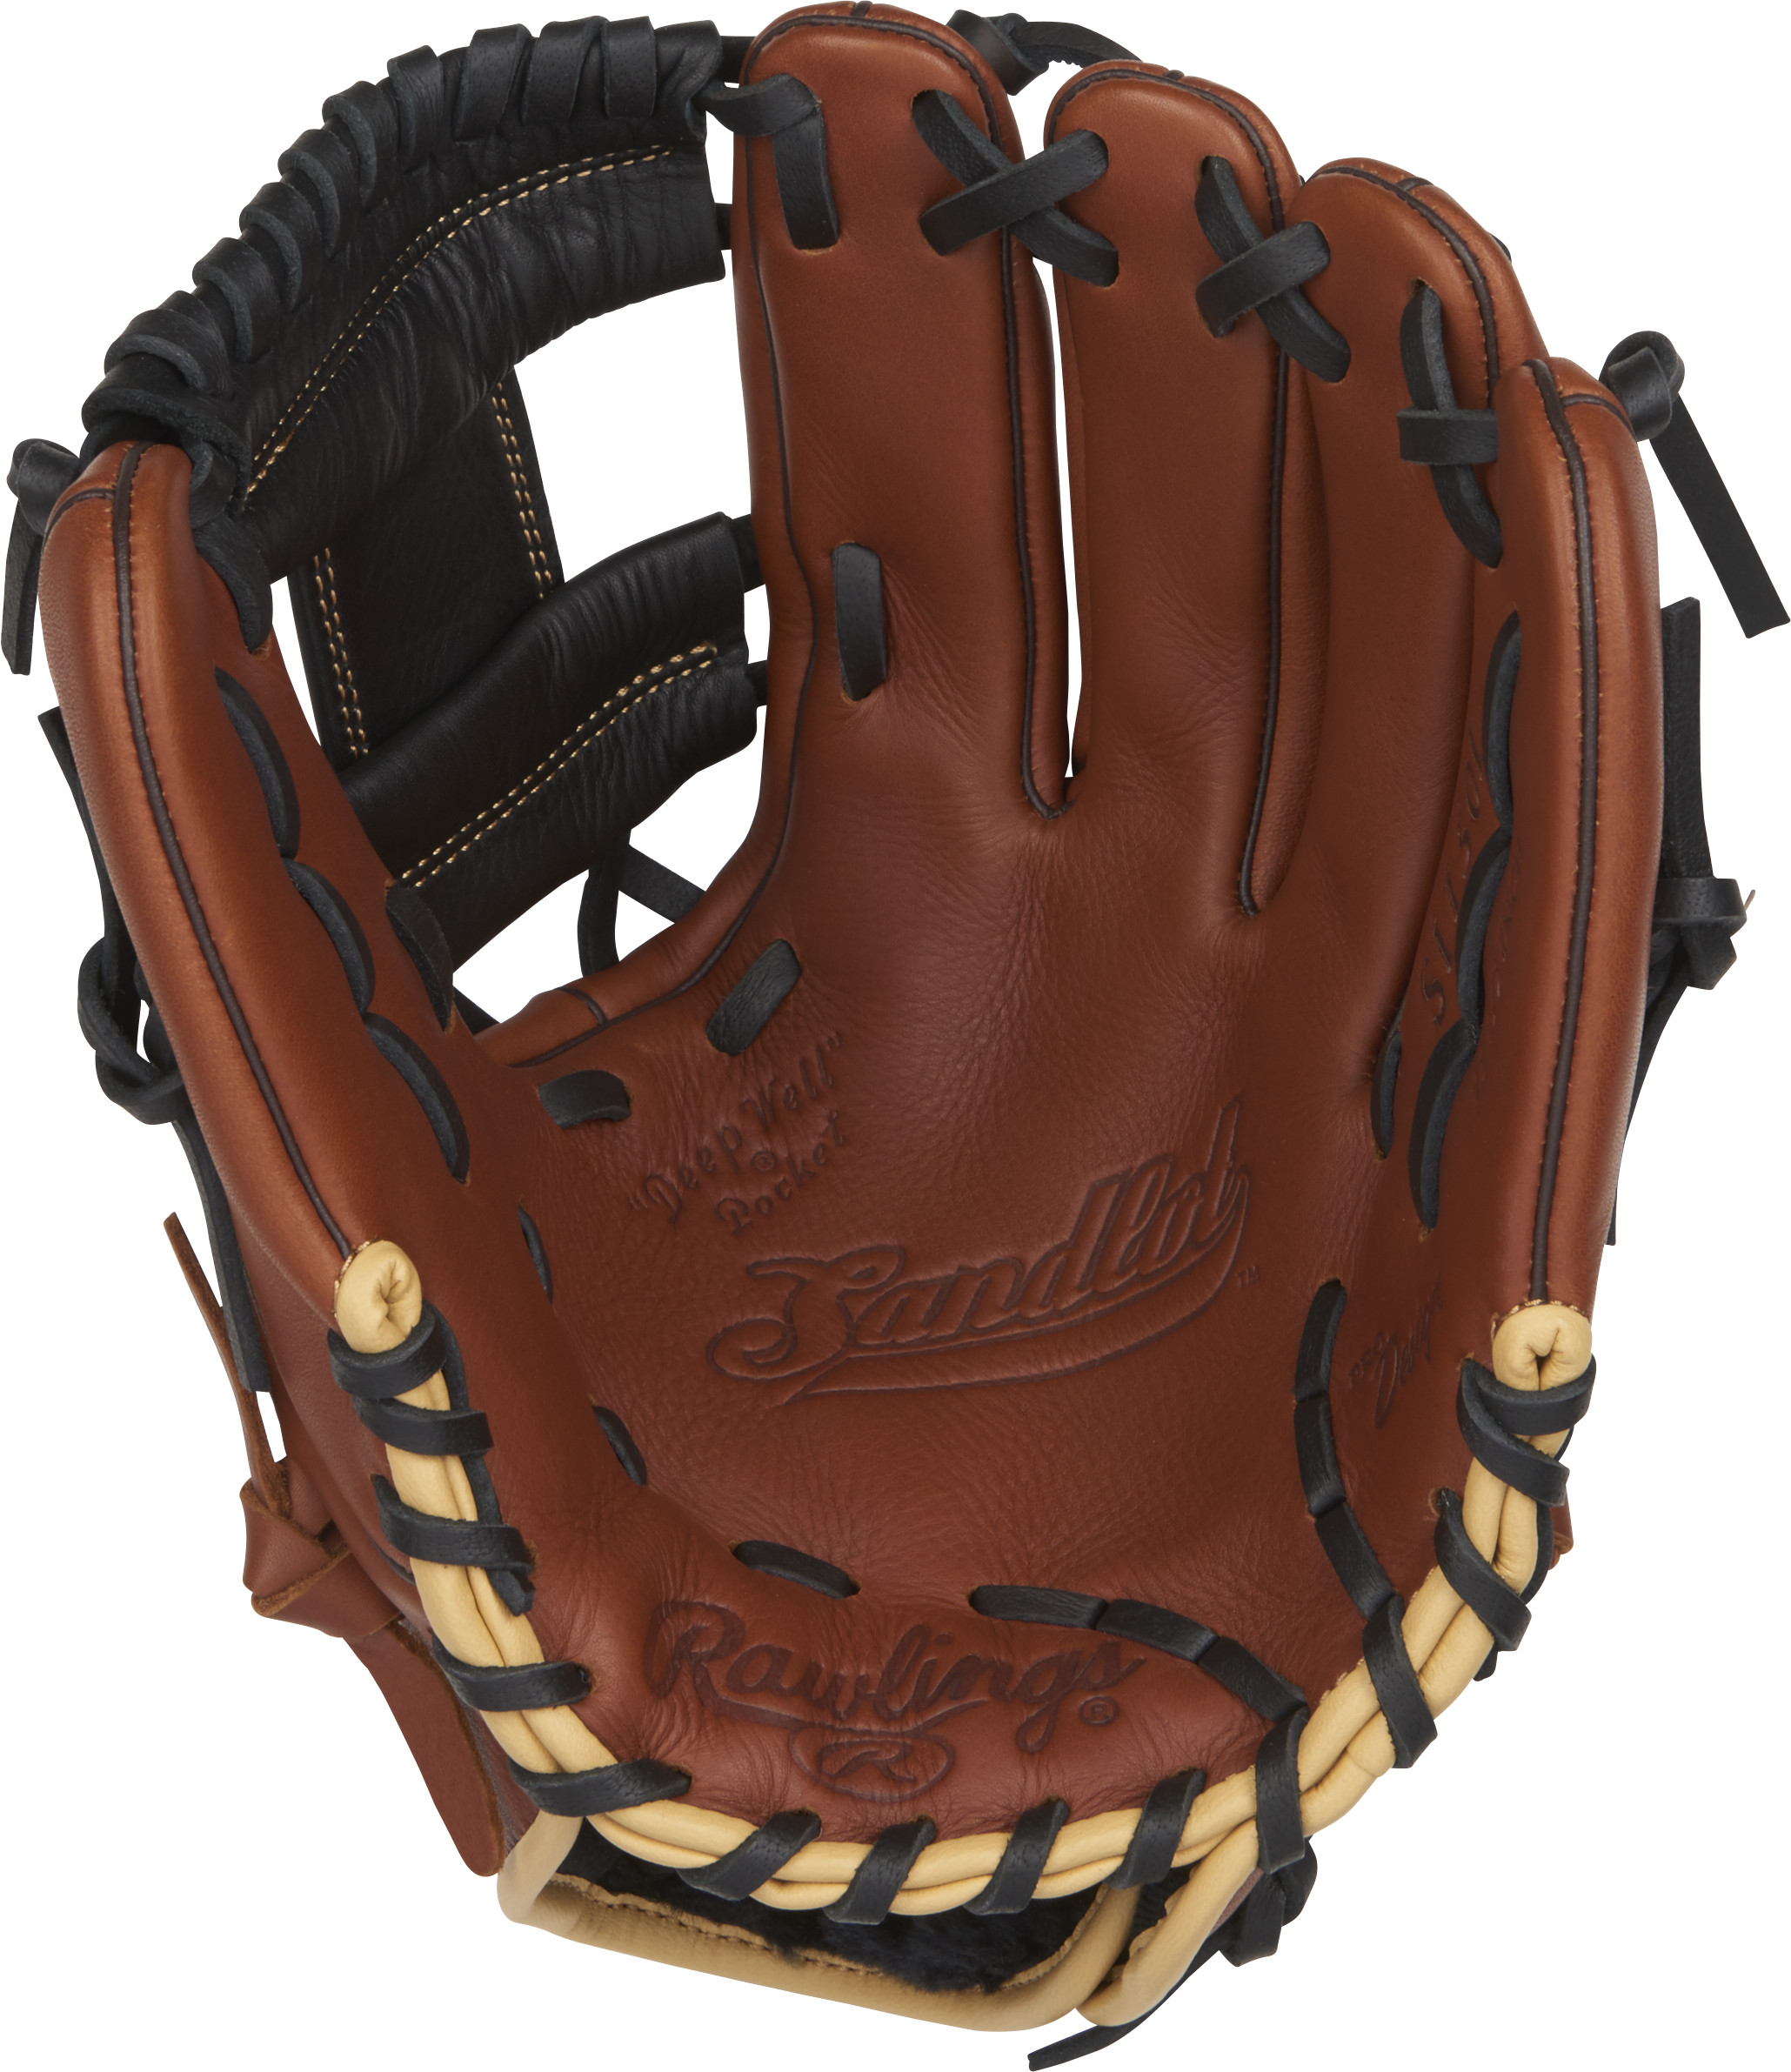 http://www.bestbatdeals.com/images/gloves/rawlings/S1150I-1.jpg